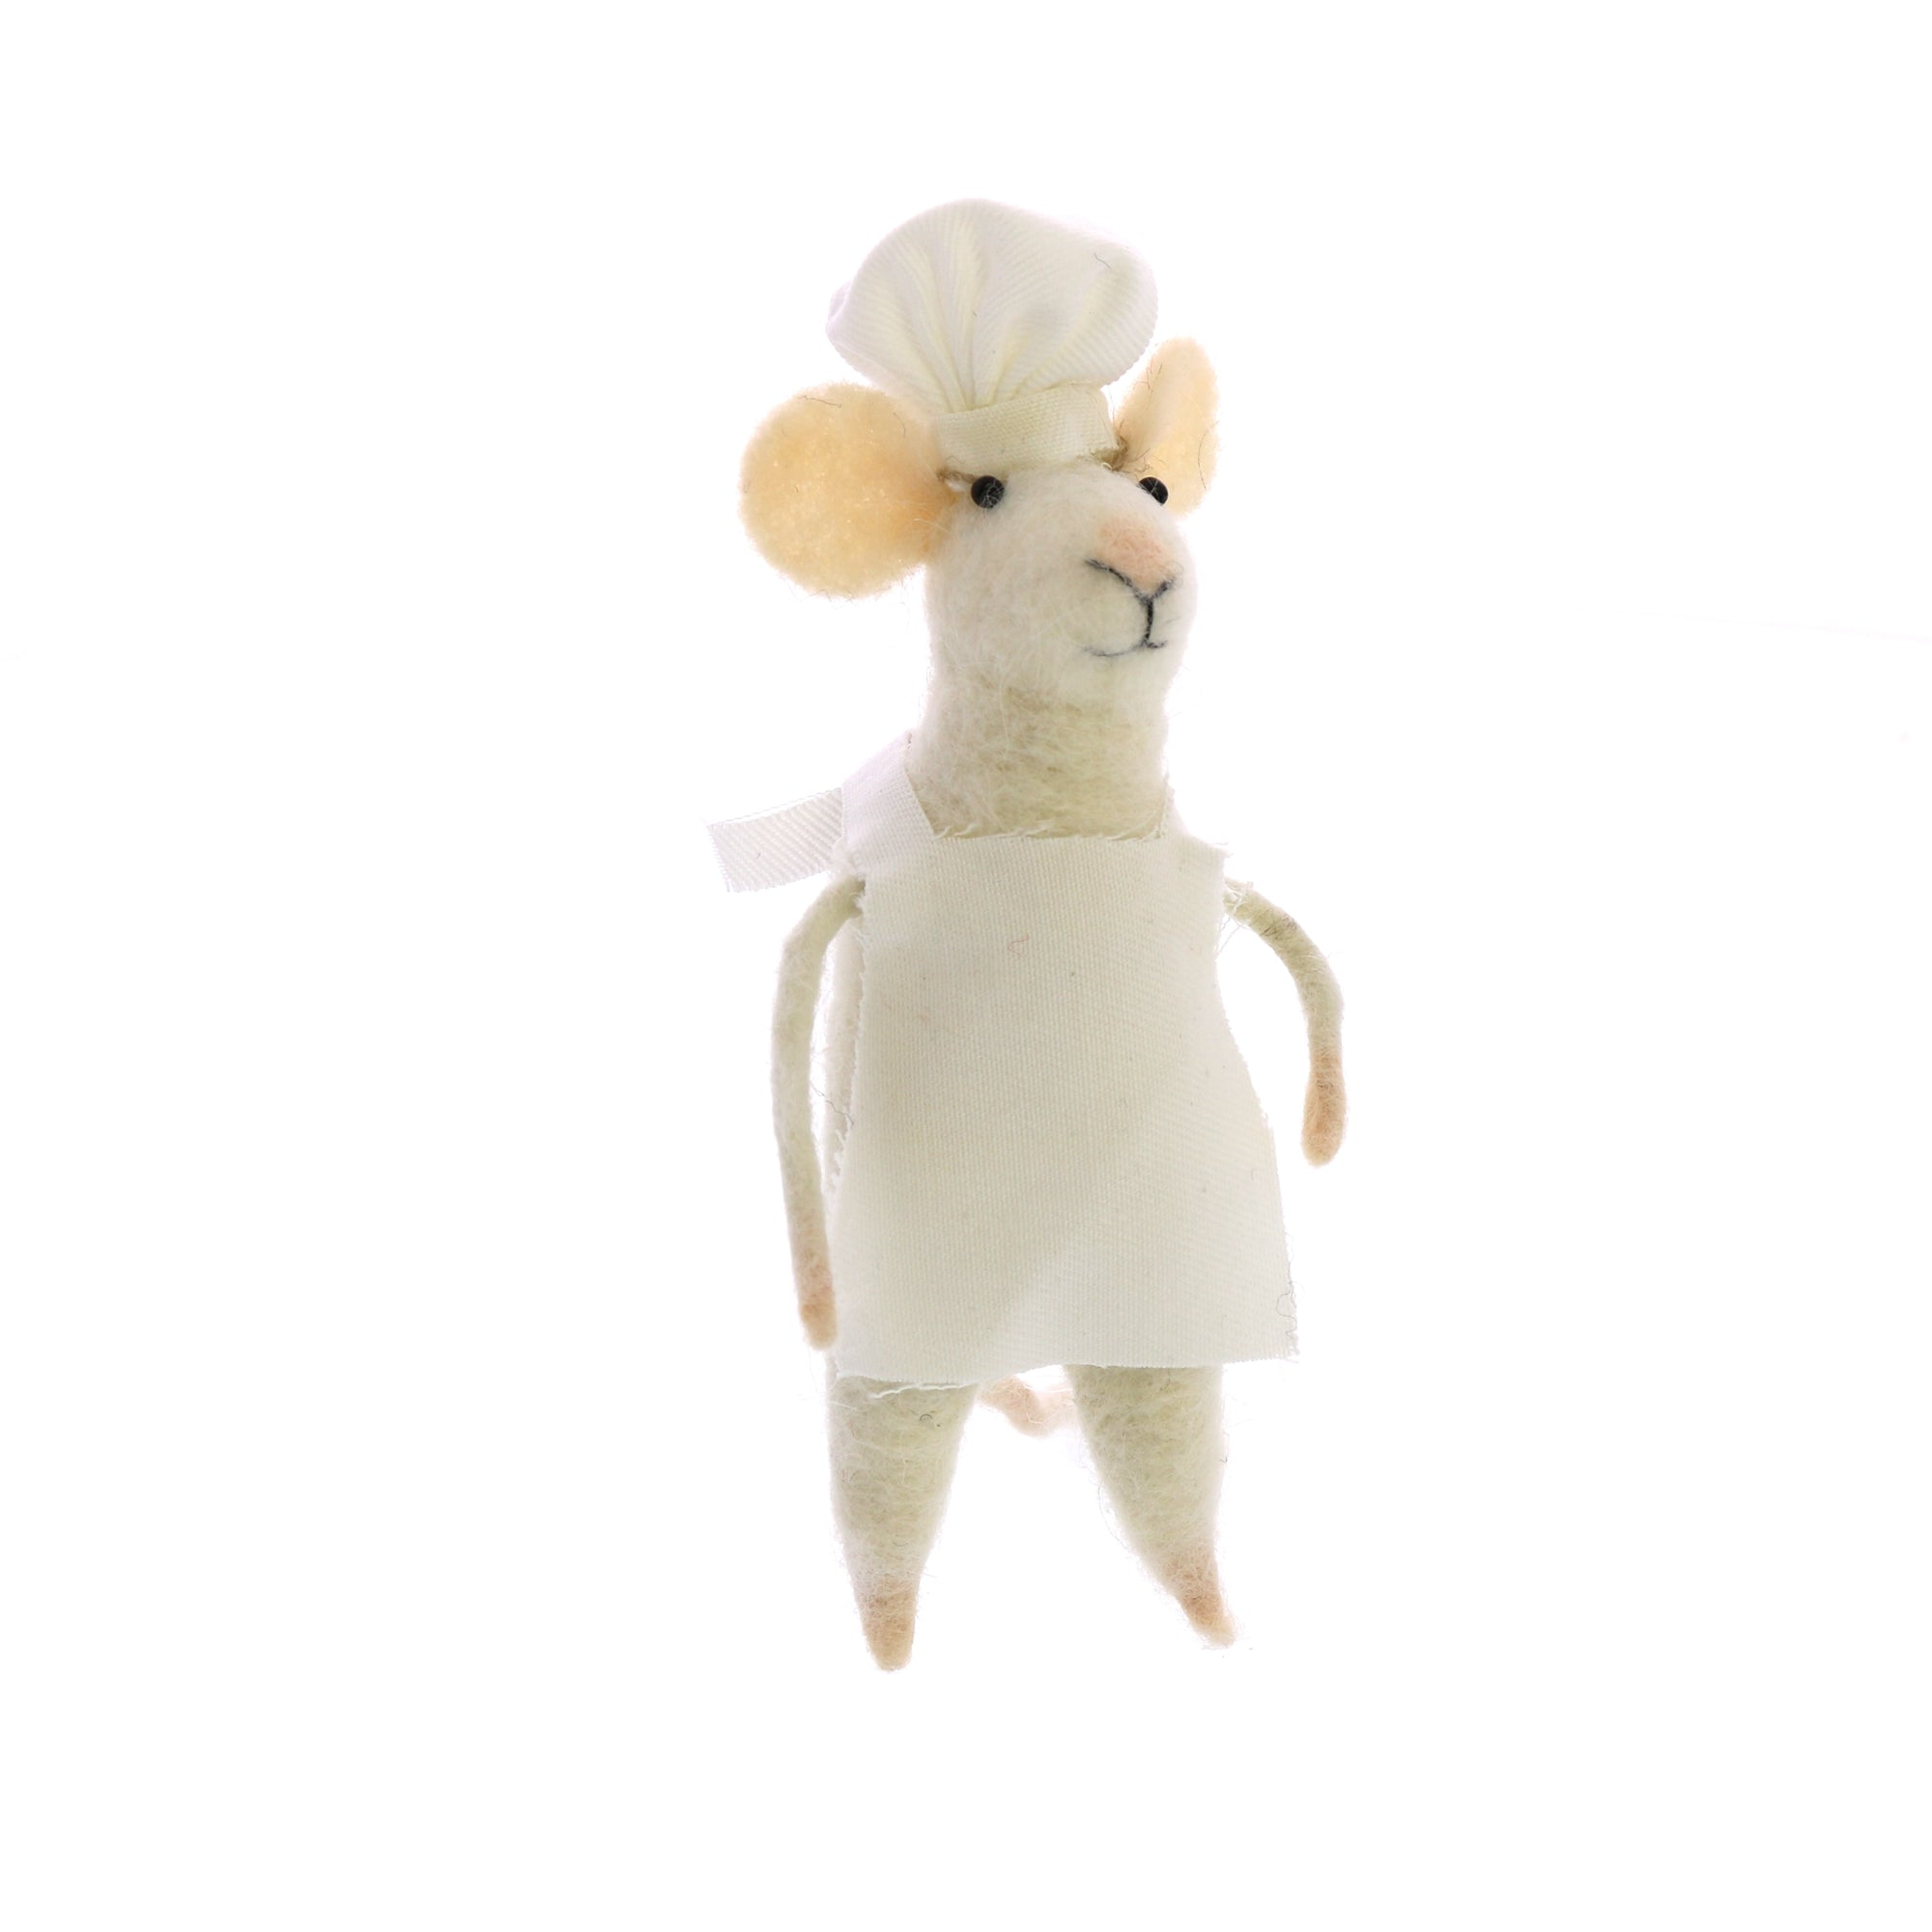 Felt Chef Mouse - CARLYLE AVENUE